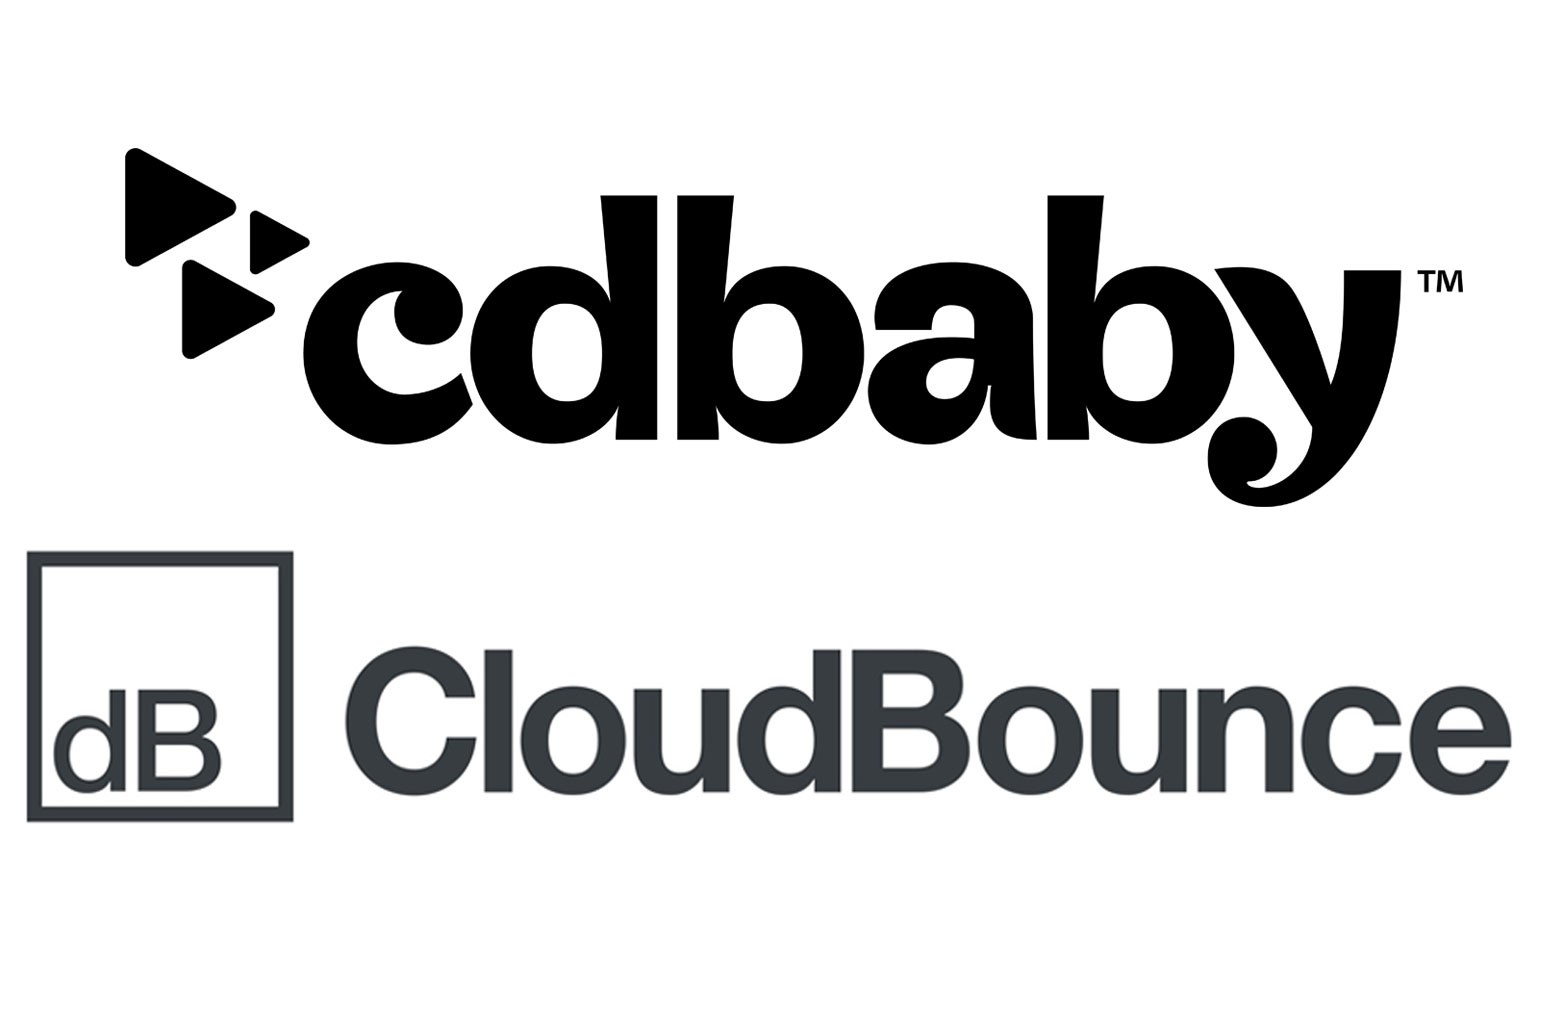 CD baby cloudbounce